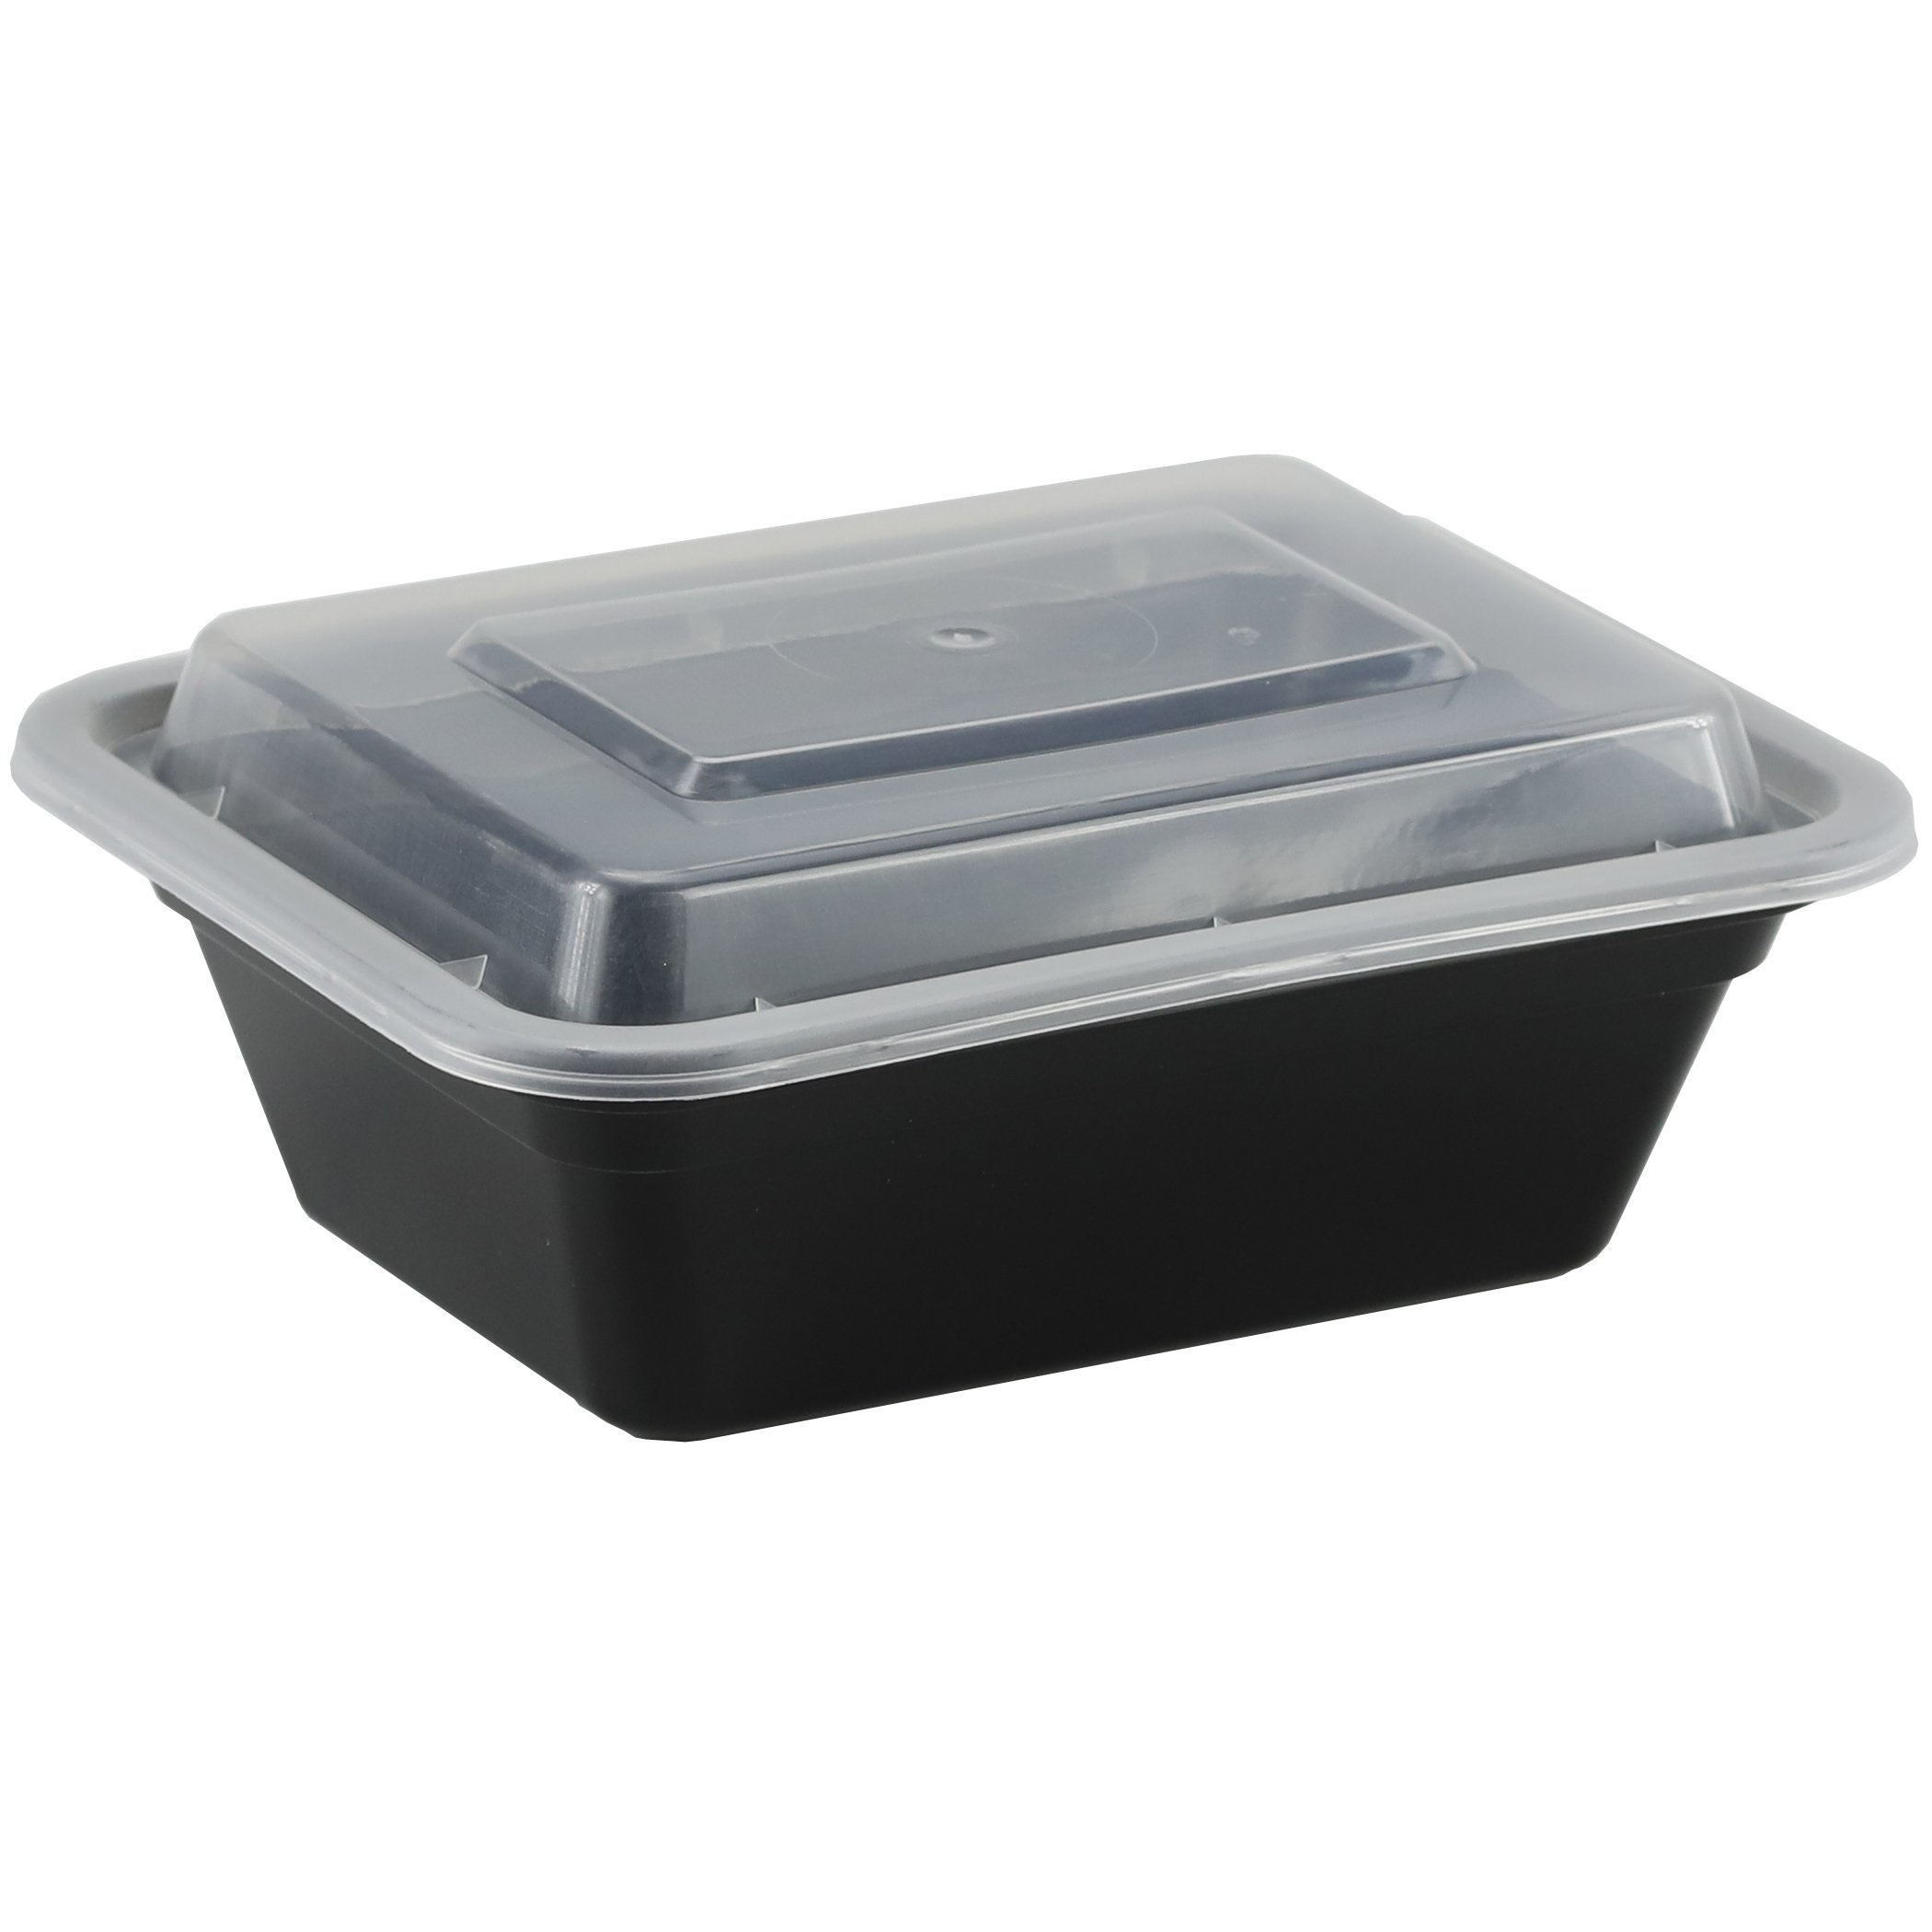 Simply Deliver 5'' x 4'' Medium Rectangular Container with Lid, Microwavable, Black, 150-Count by Simply Deliver